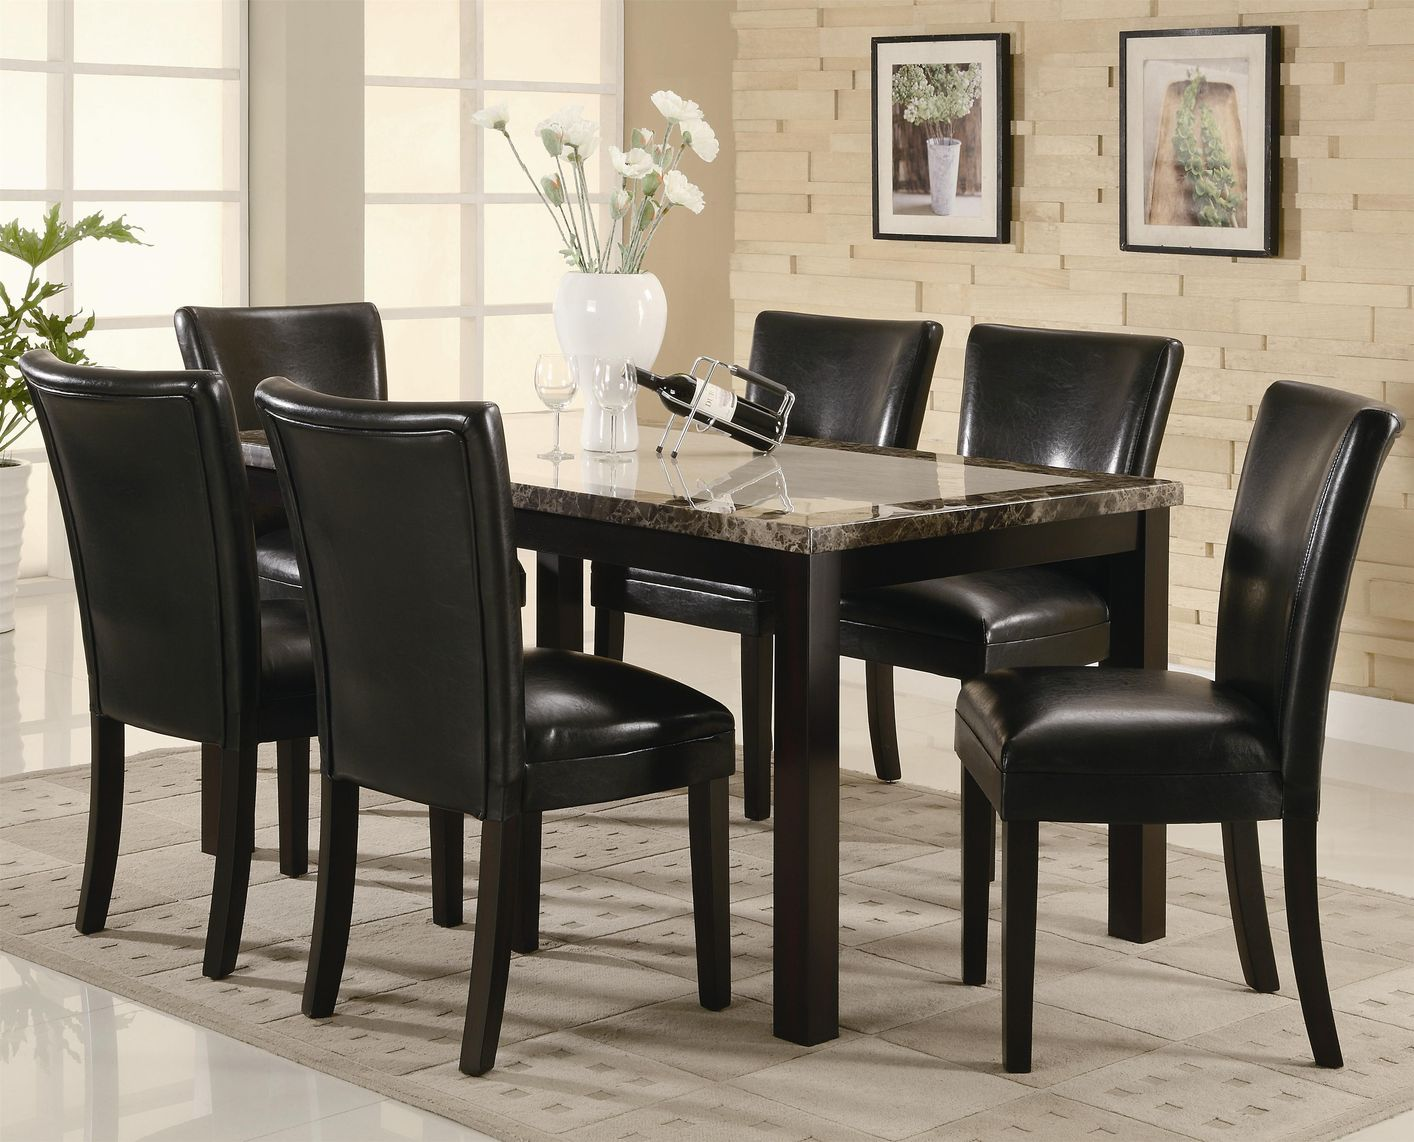 Low cost dining room sets